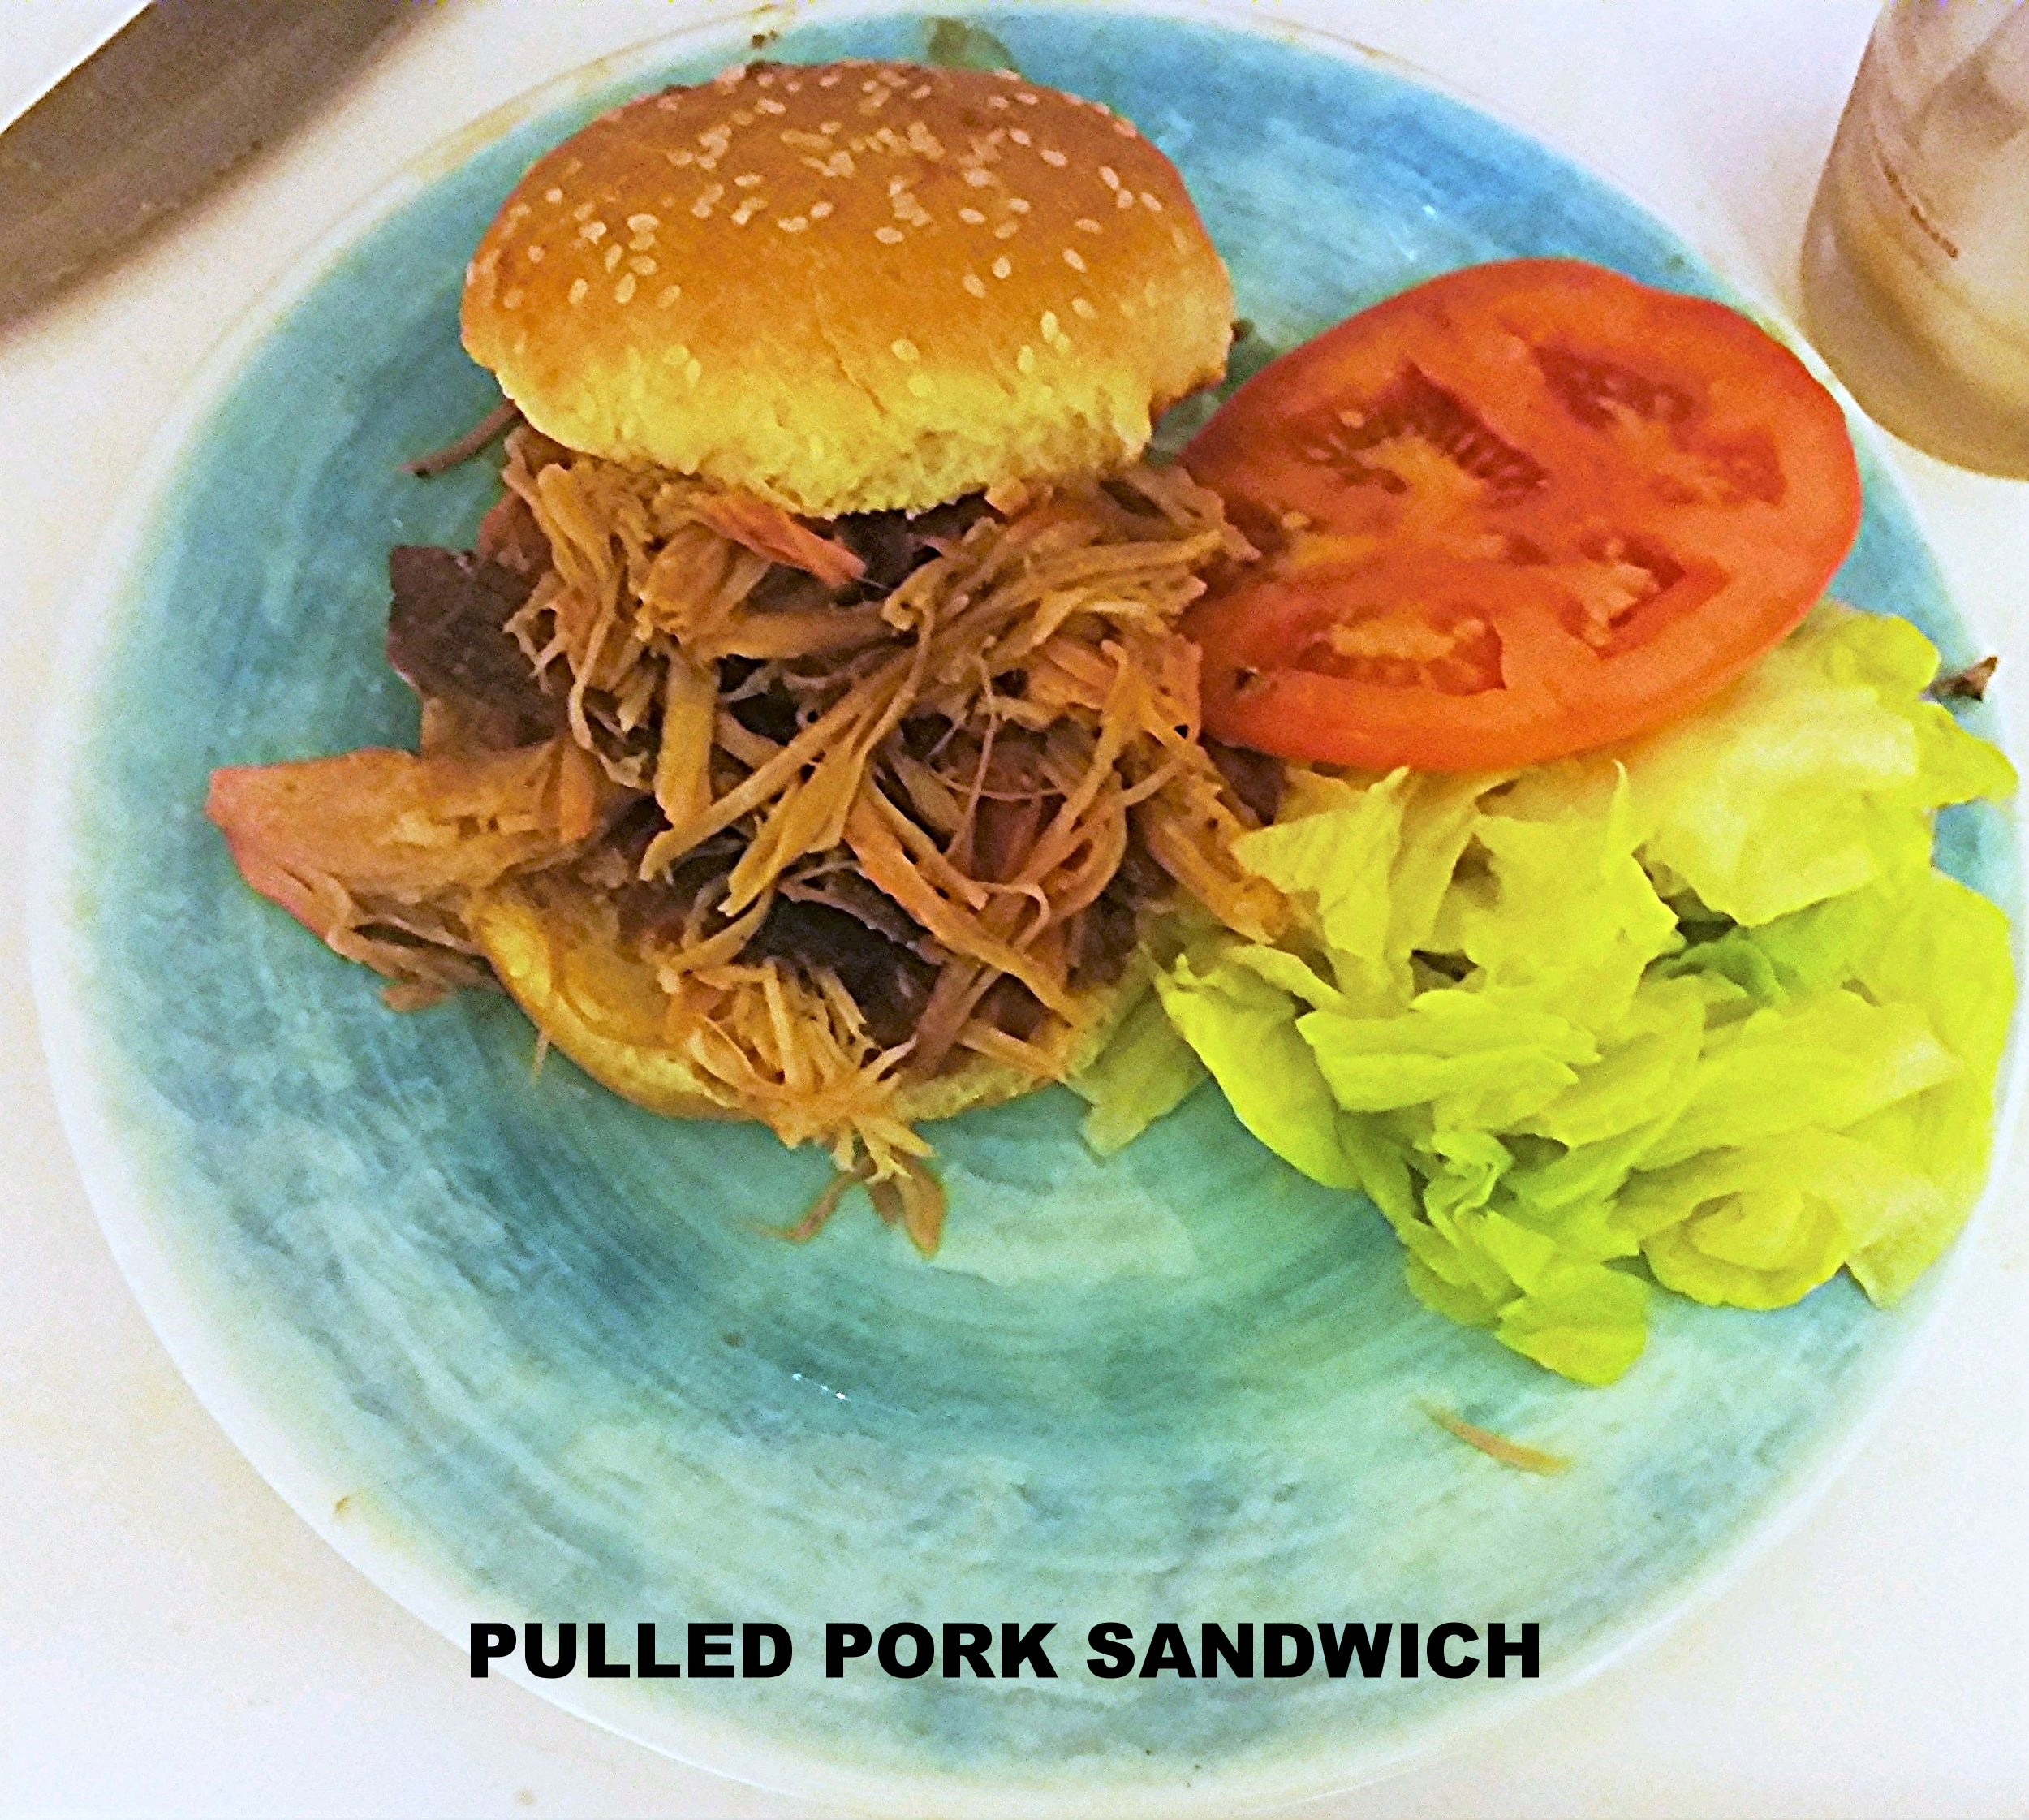 OfficialPulledPorkSandwich.jpg